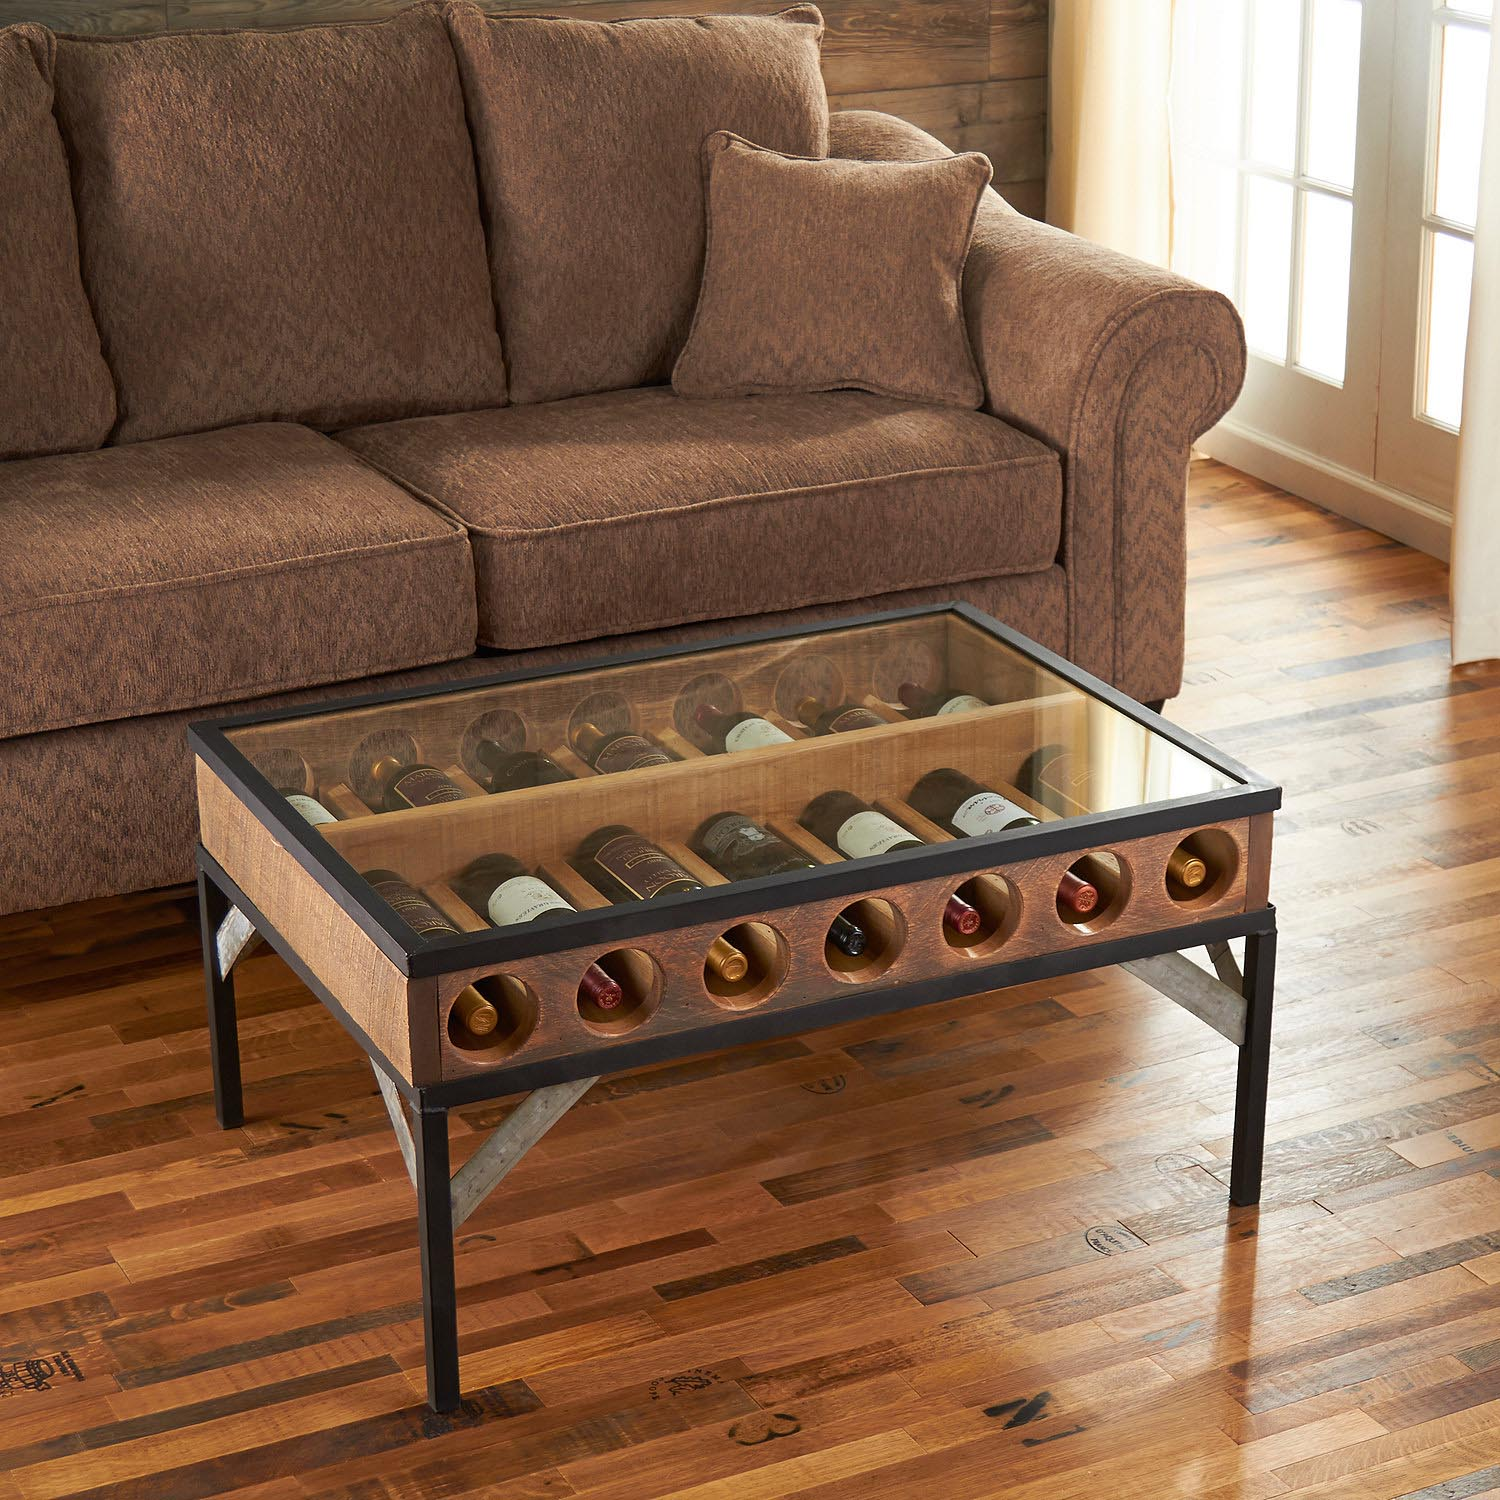 Coffee Table with Glass Top Display